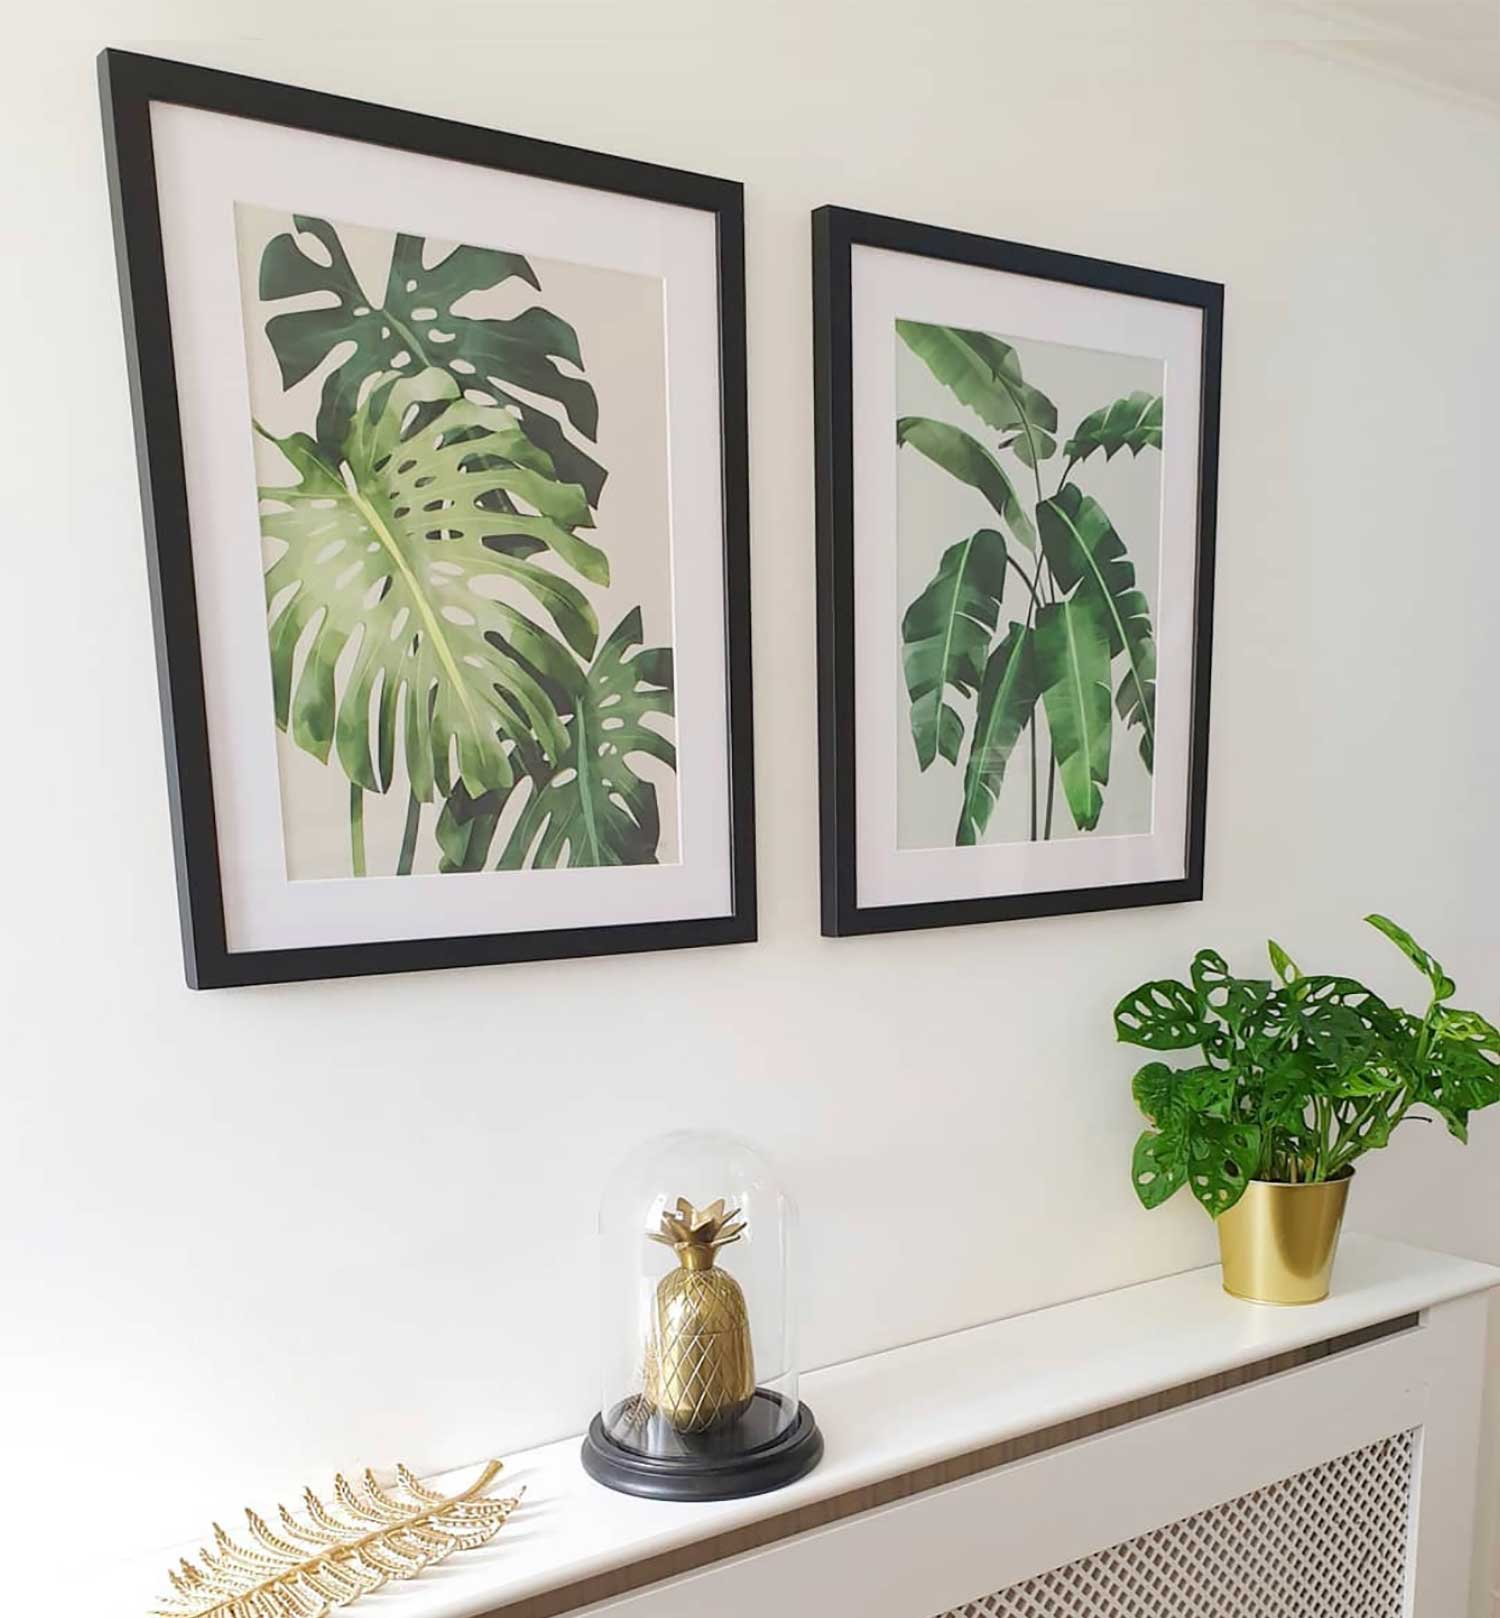 Green Lili Botanical Monstera and Banana Leaves Framed Prints